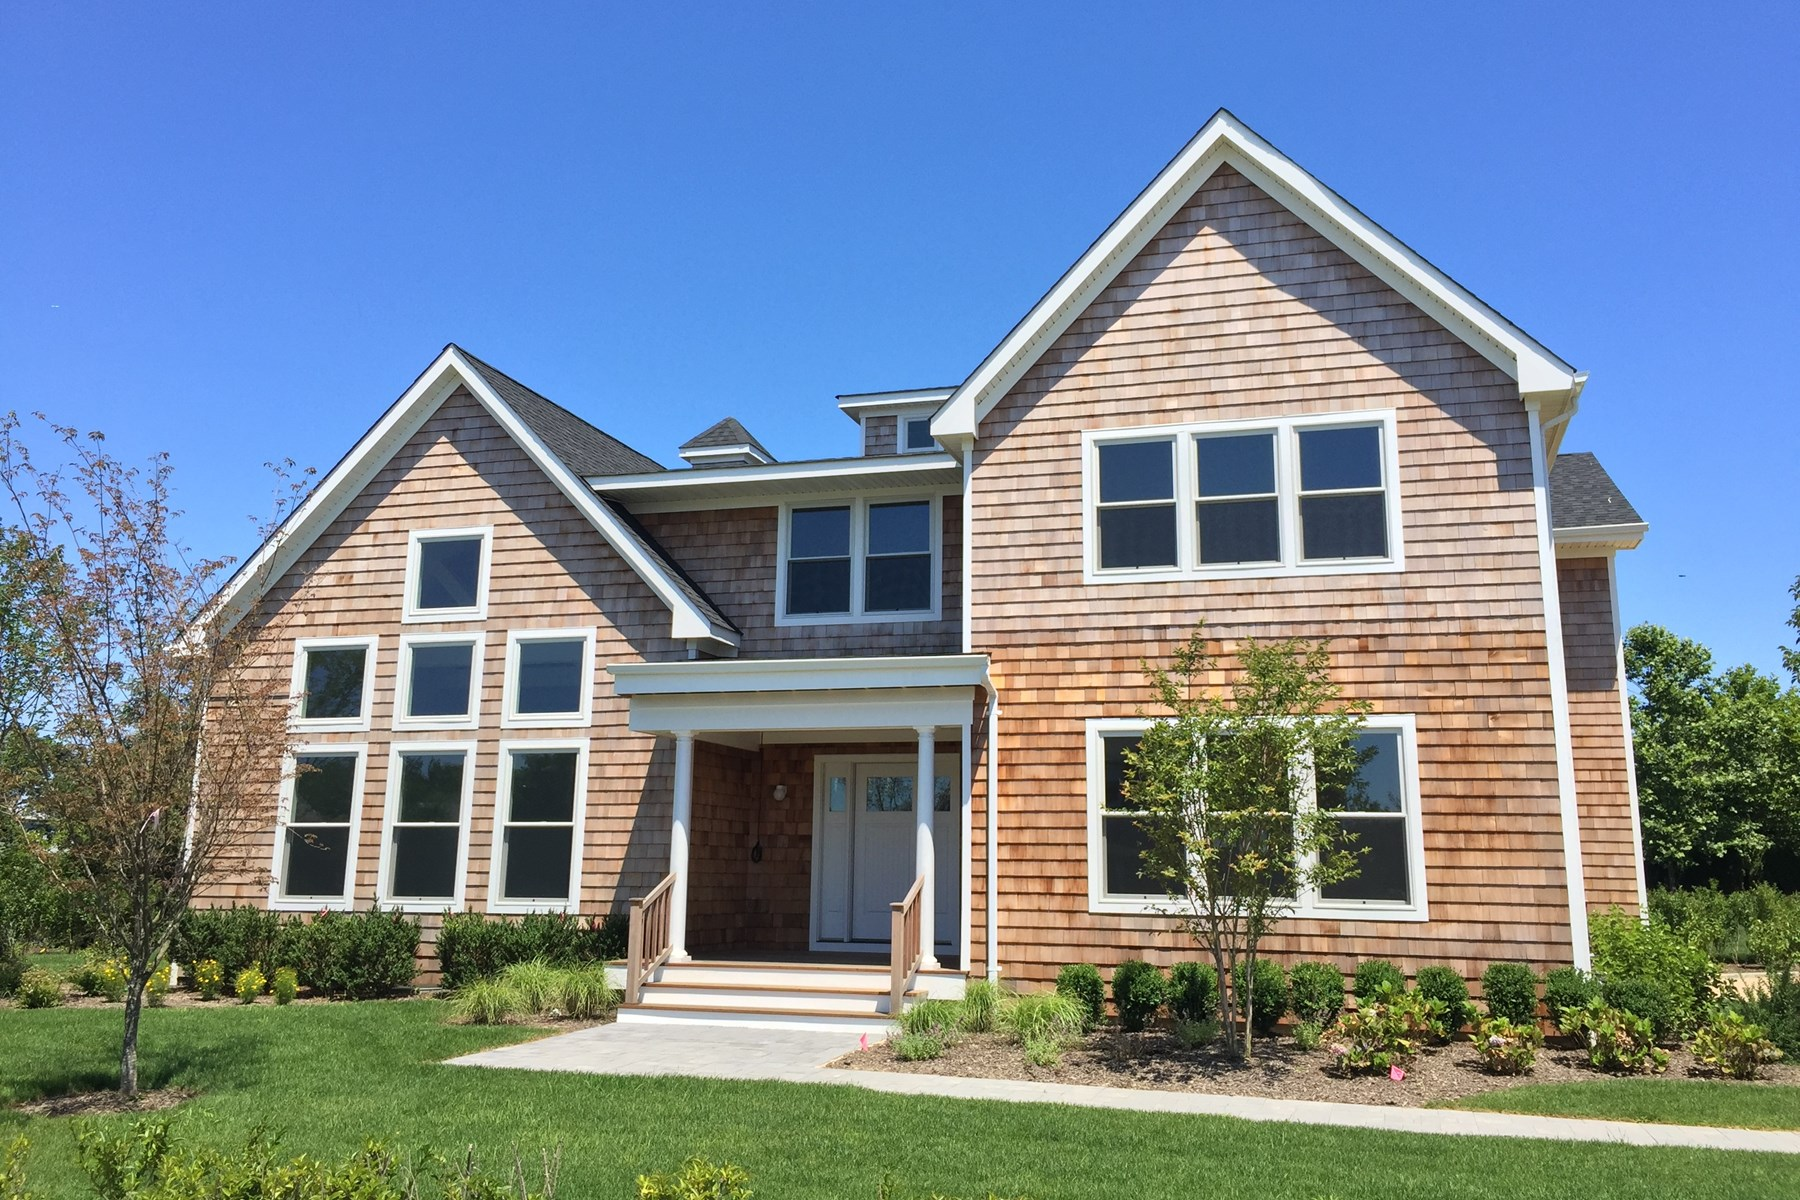 Villa per Vendita alle ore Southampton Meadows Estates - T Model 5 Fall Court, Lot 19 T- Model Southampton, New York, 11968 Stati Uniti